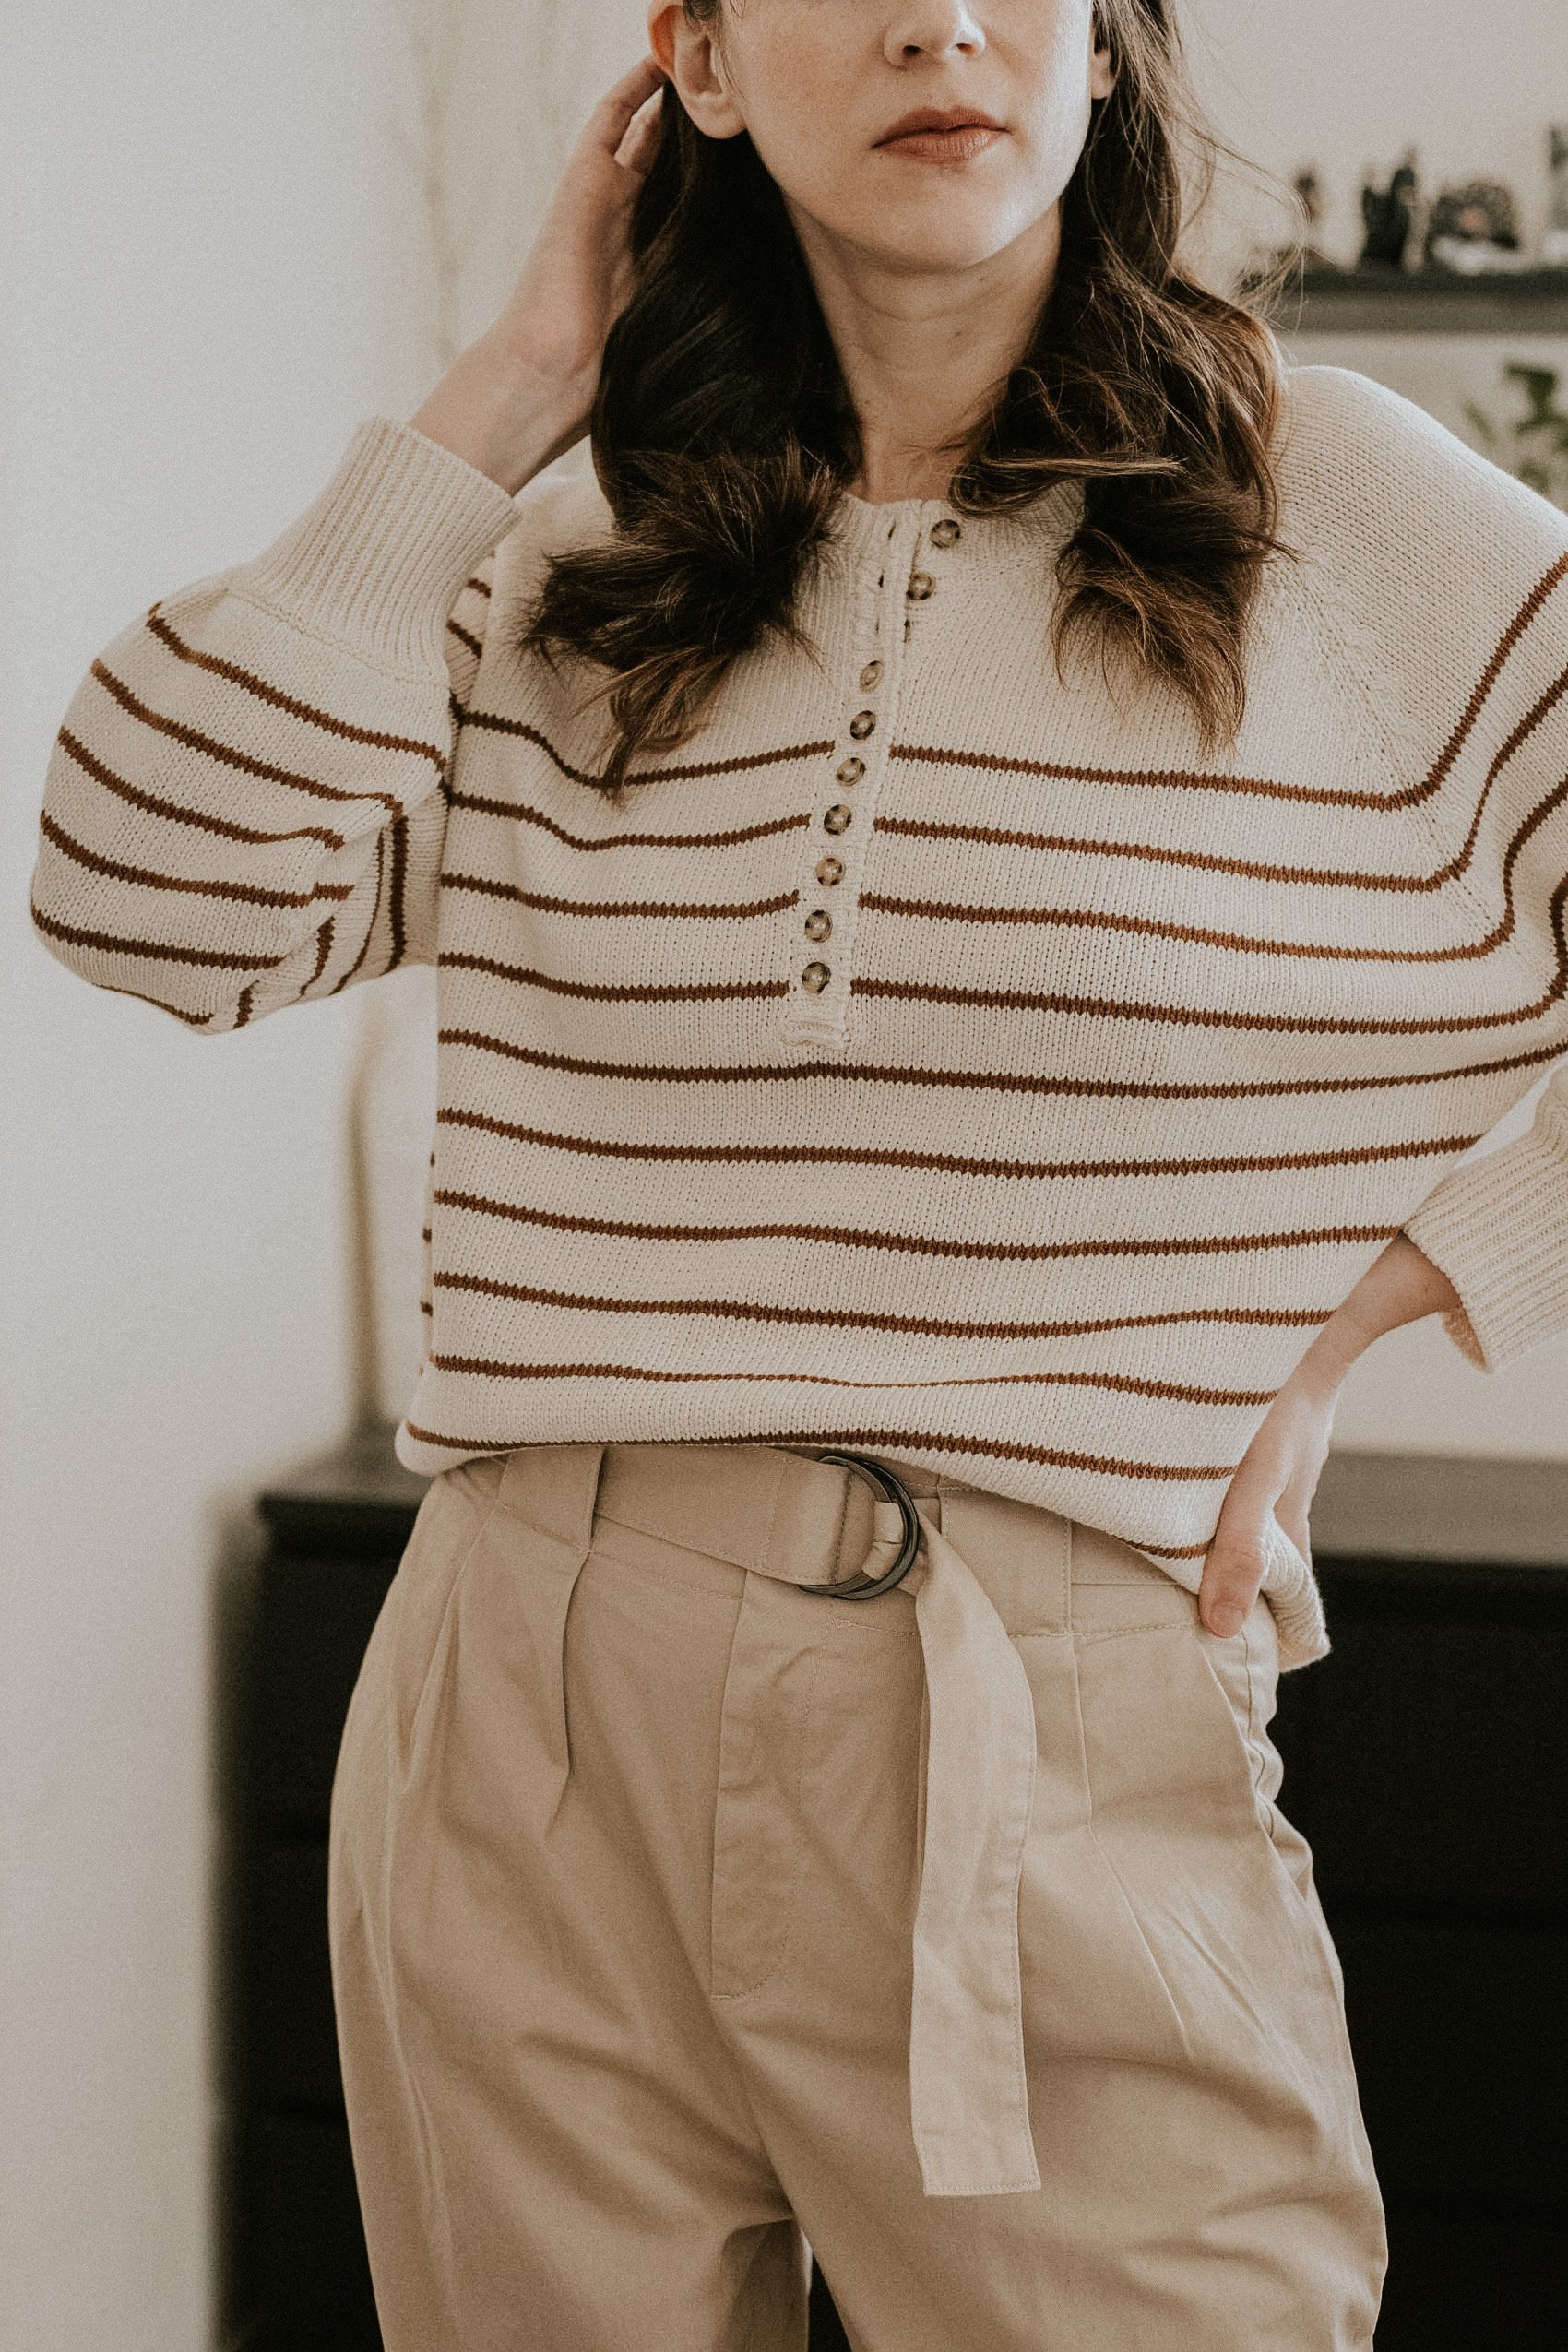 Sezane Leontine Striped Sweater with Paperbag waist trousers